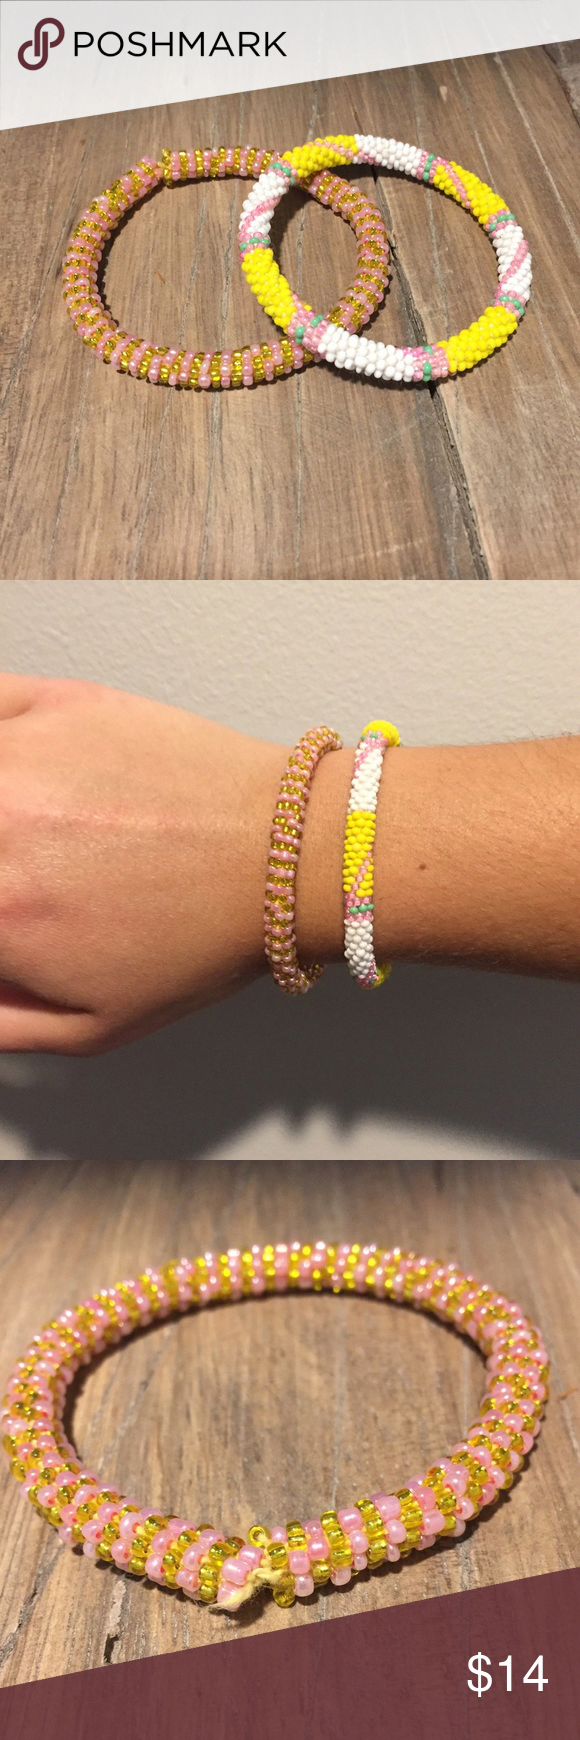 Wedding decorations set october 2018 Lily and Laura Beaded Bracelet Set lightly used yellow and pink